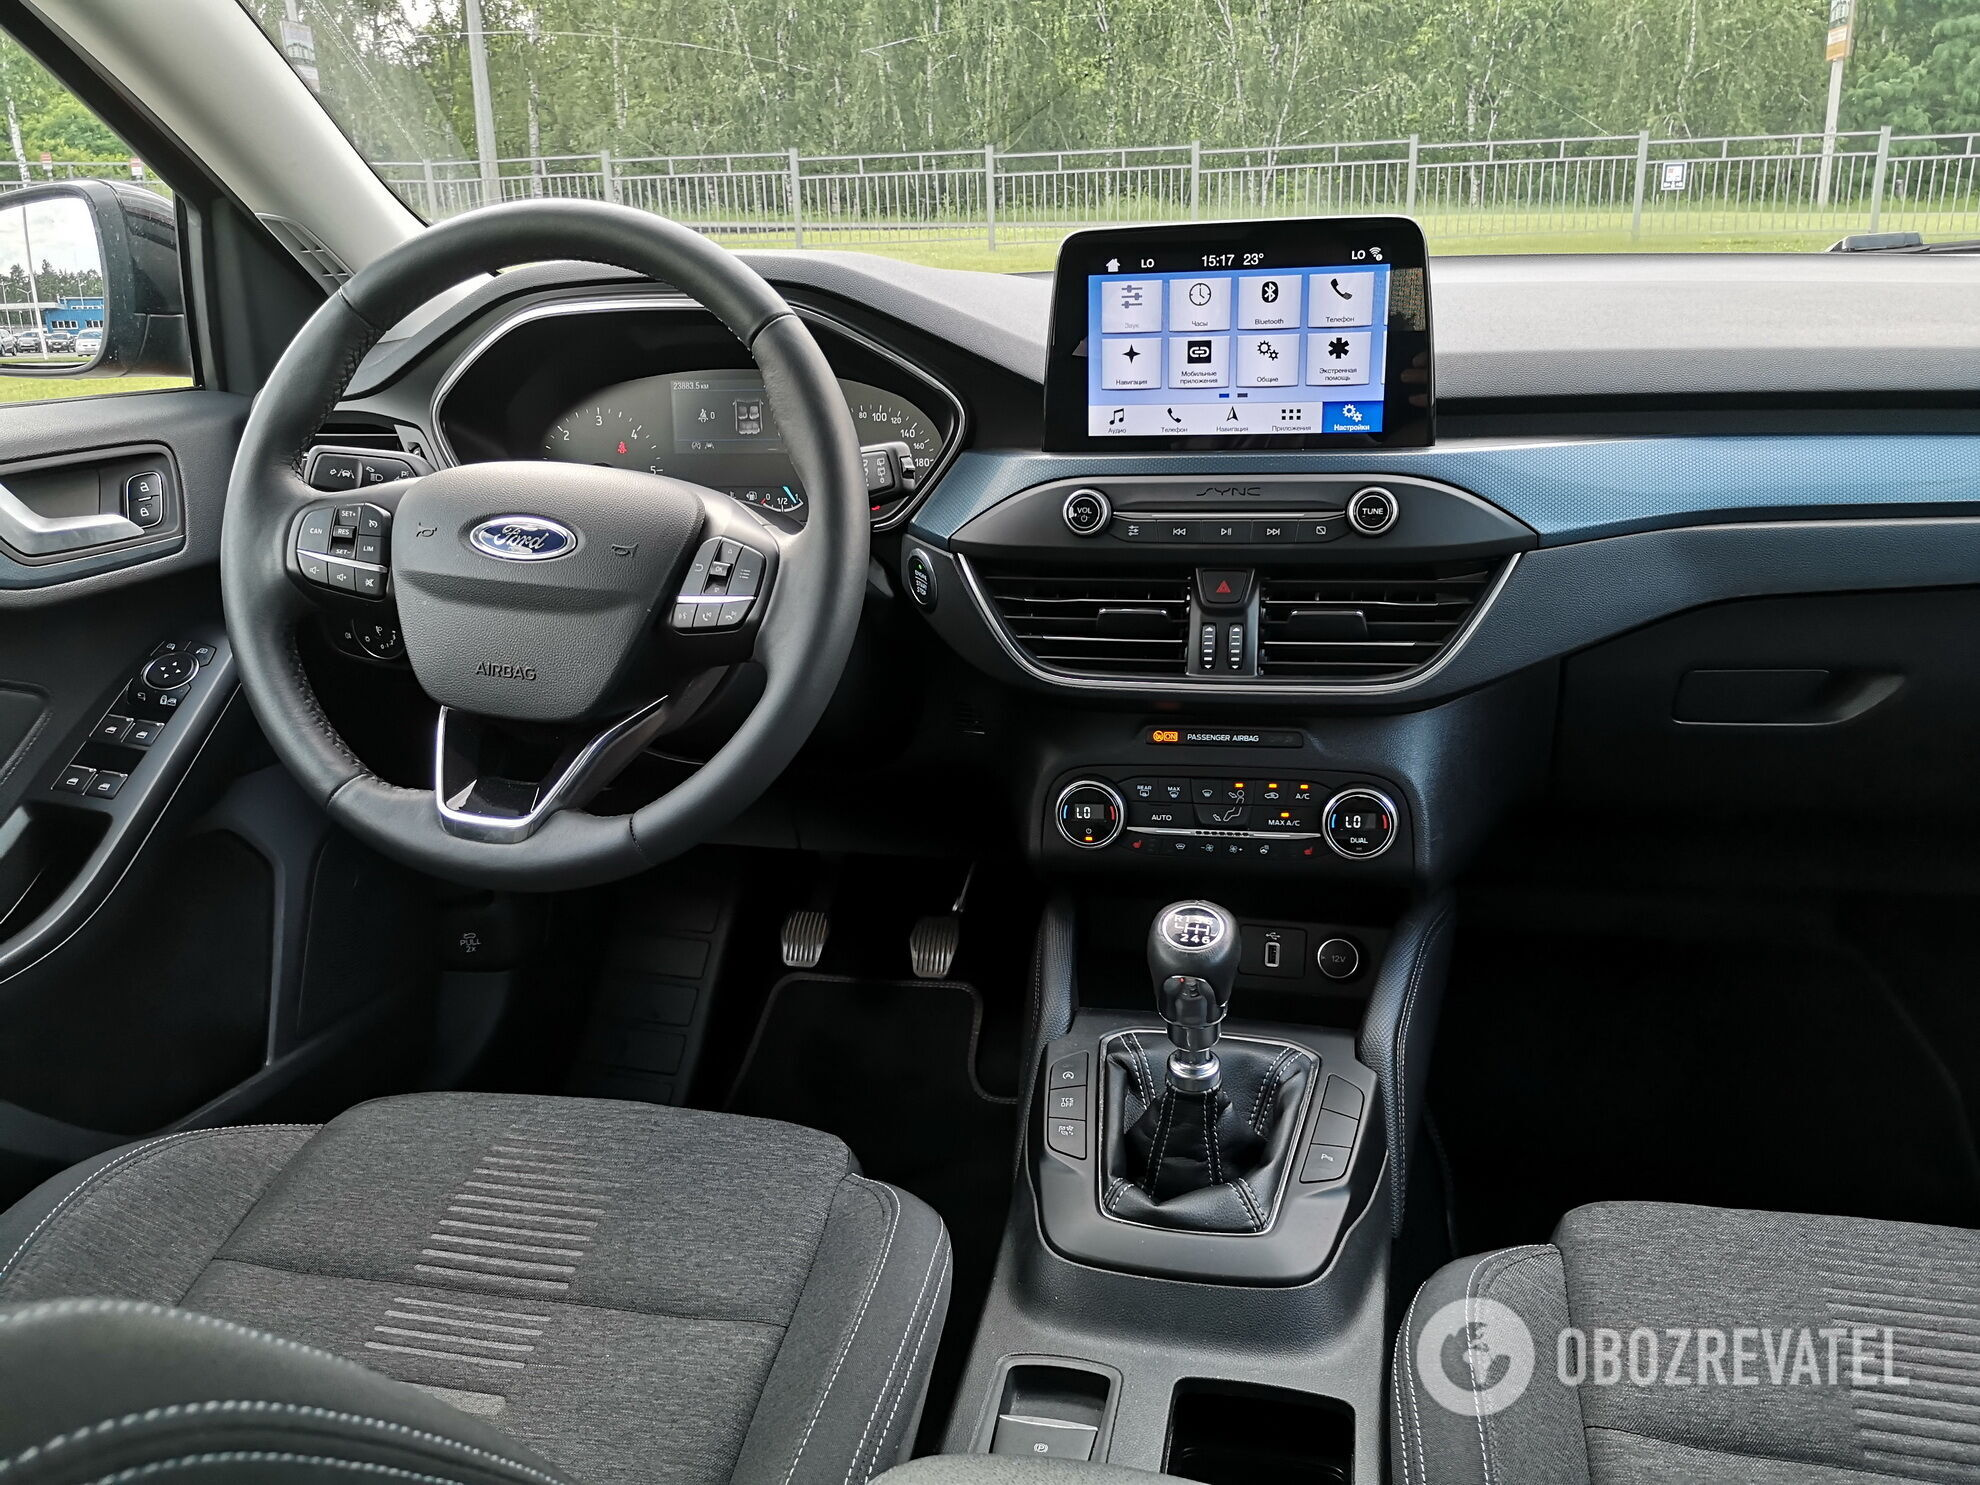 2020 Ford Focus Active. Фото: